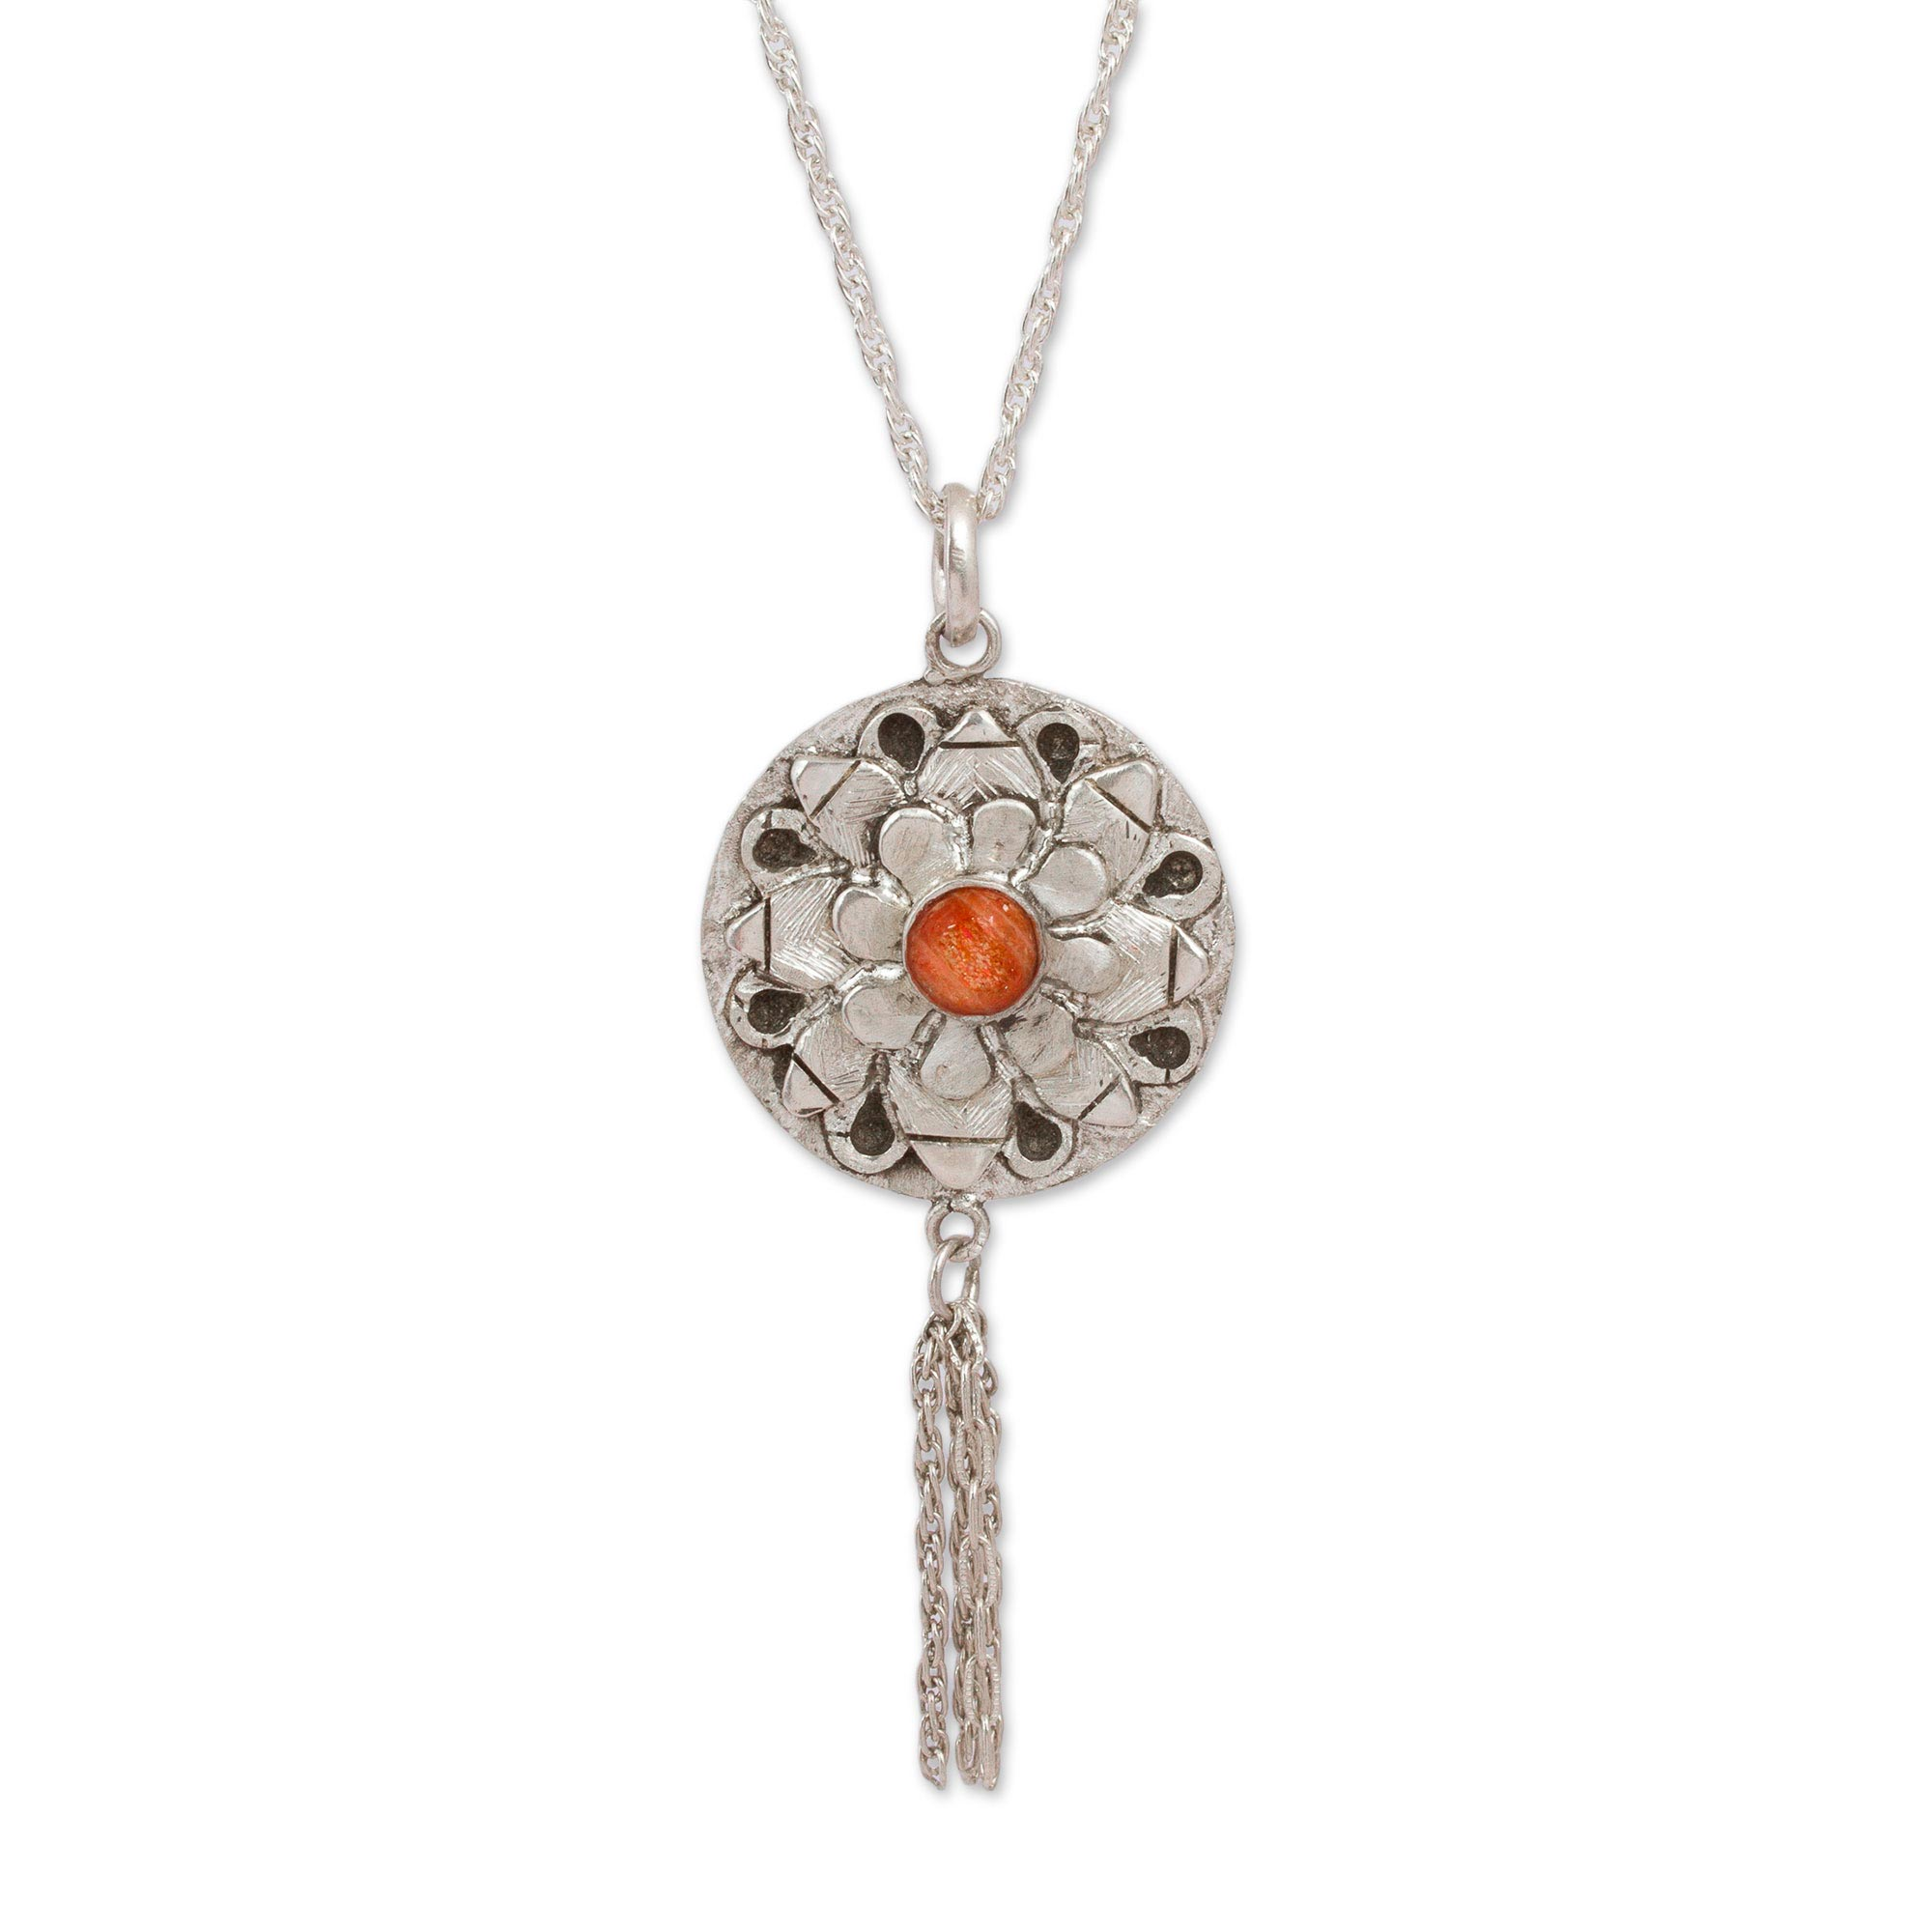 necklace jkonikoff product long pendant sunstone druzy